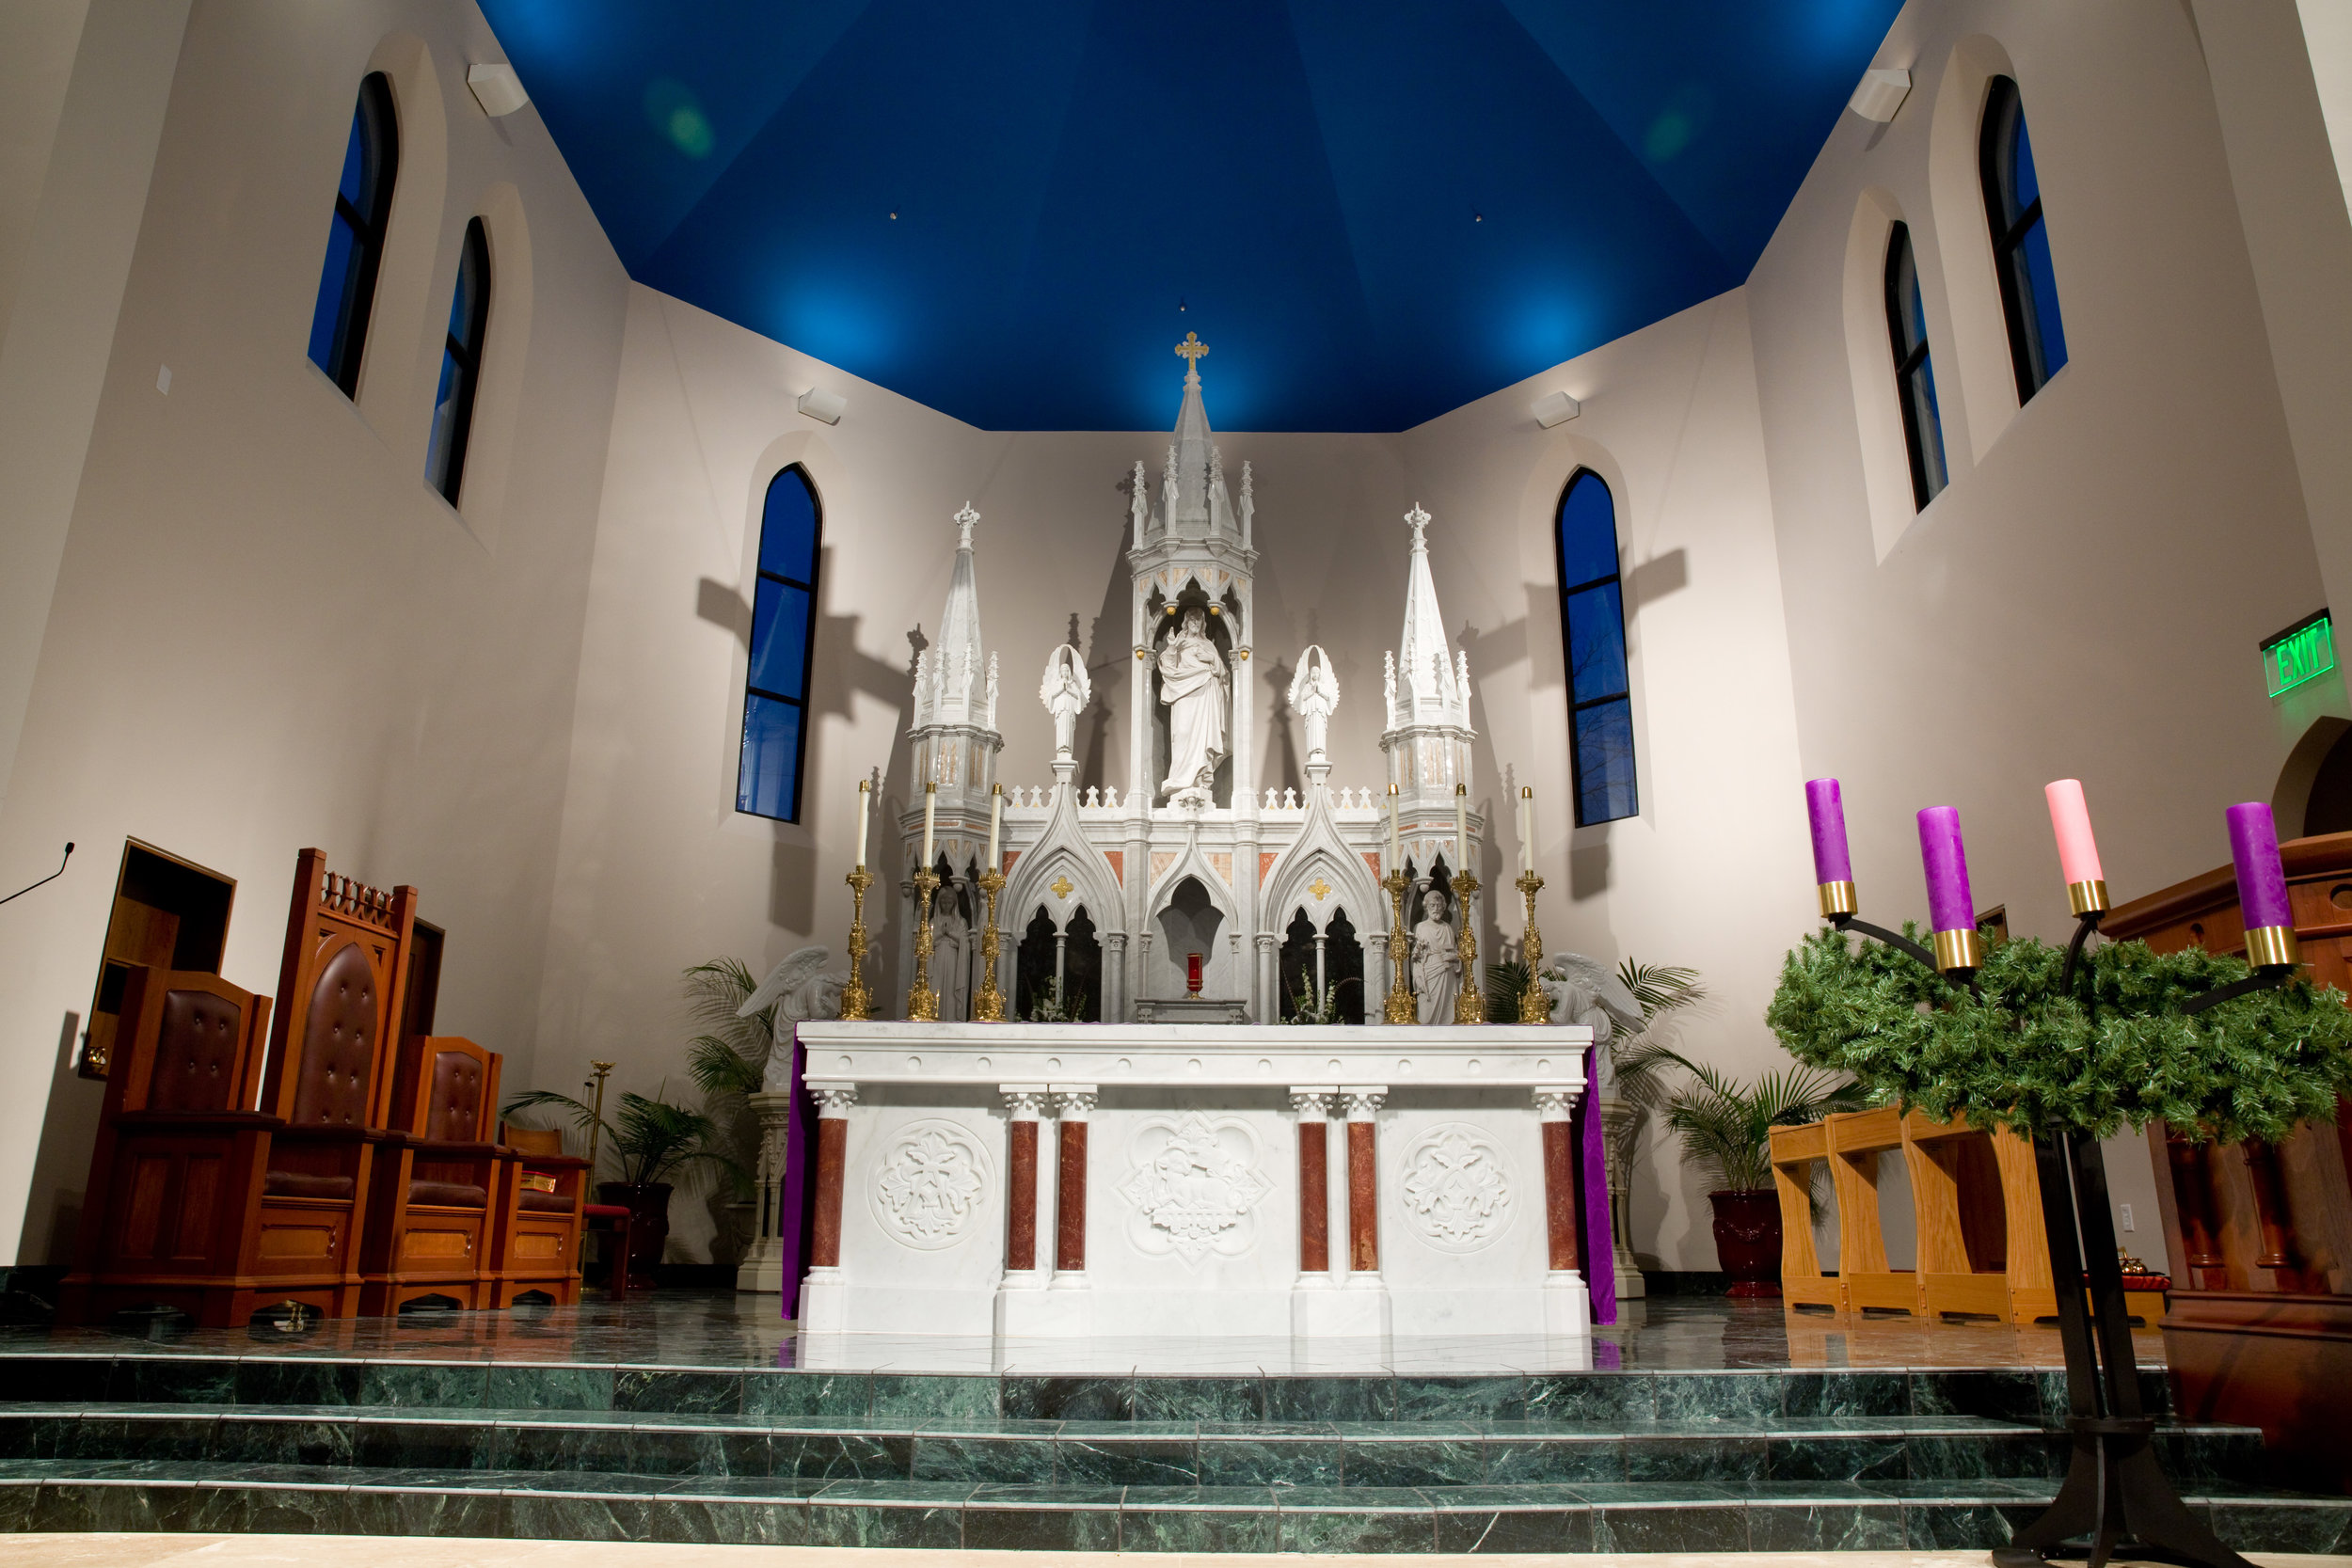 St Kateri, New Construction with Use of Altar from Original Church, Merit Award for Design Excellence